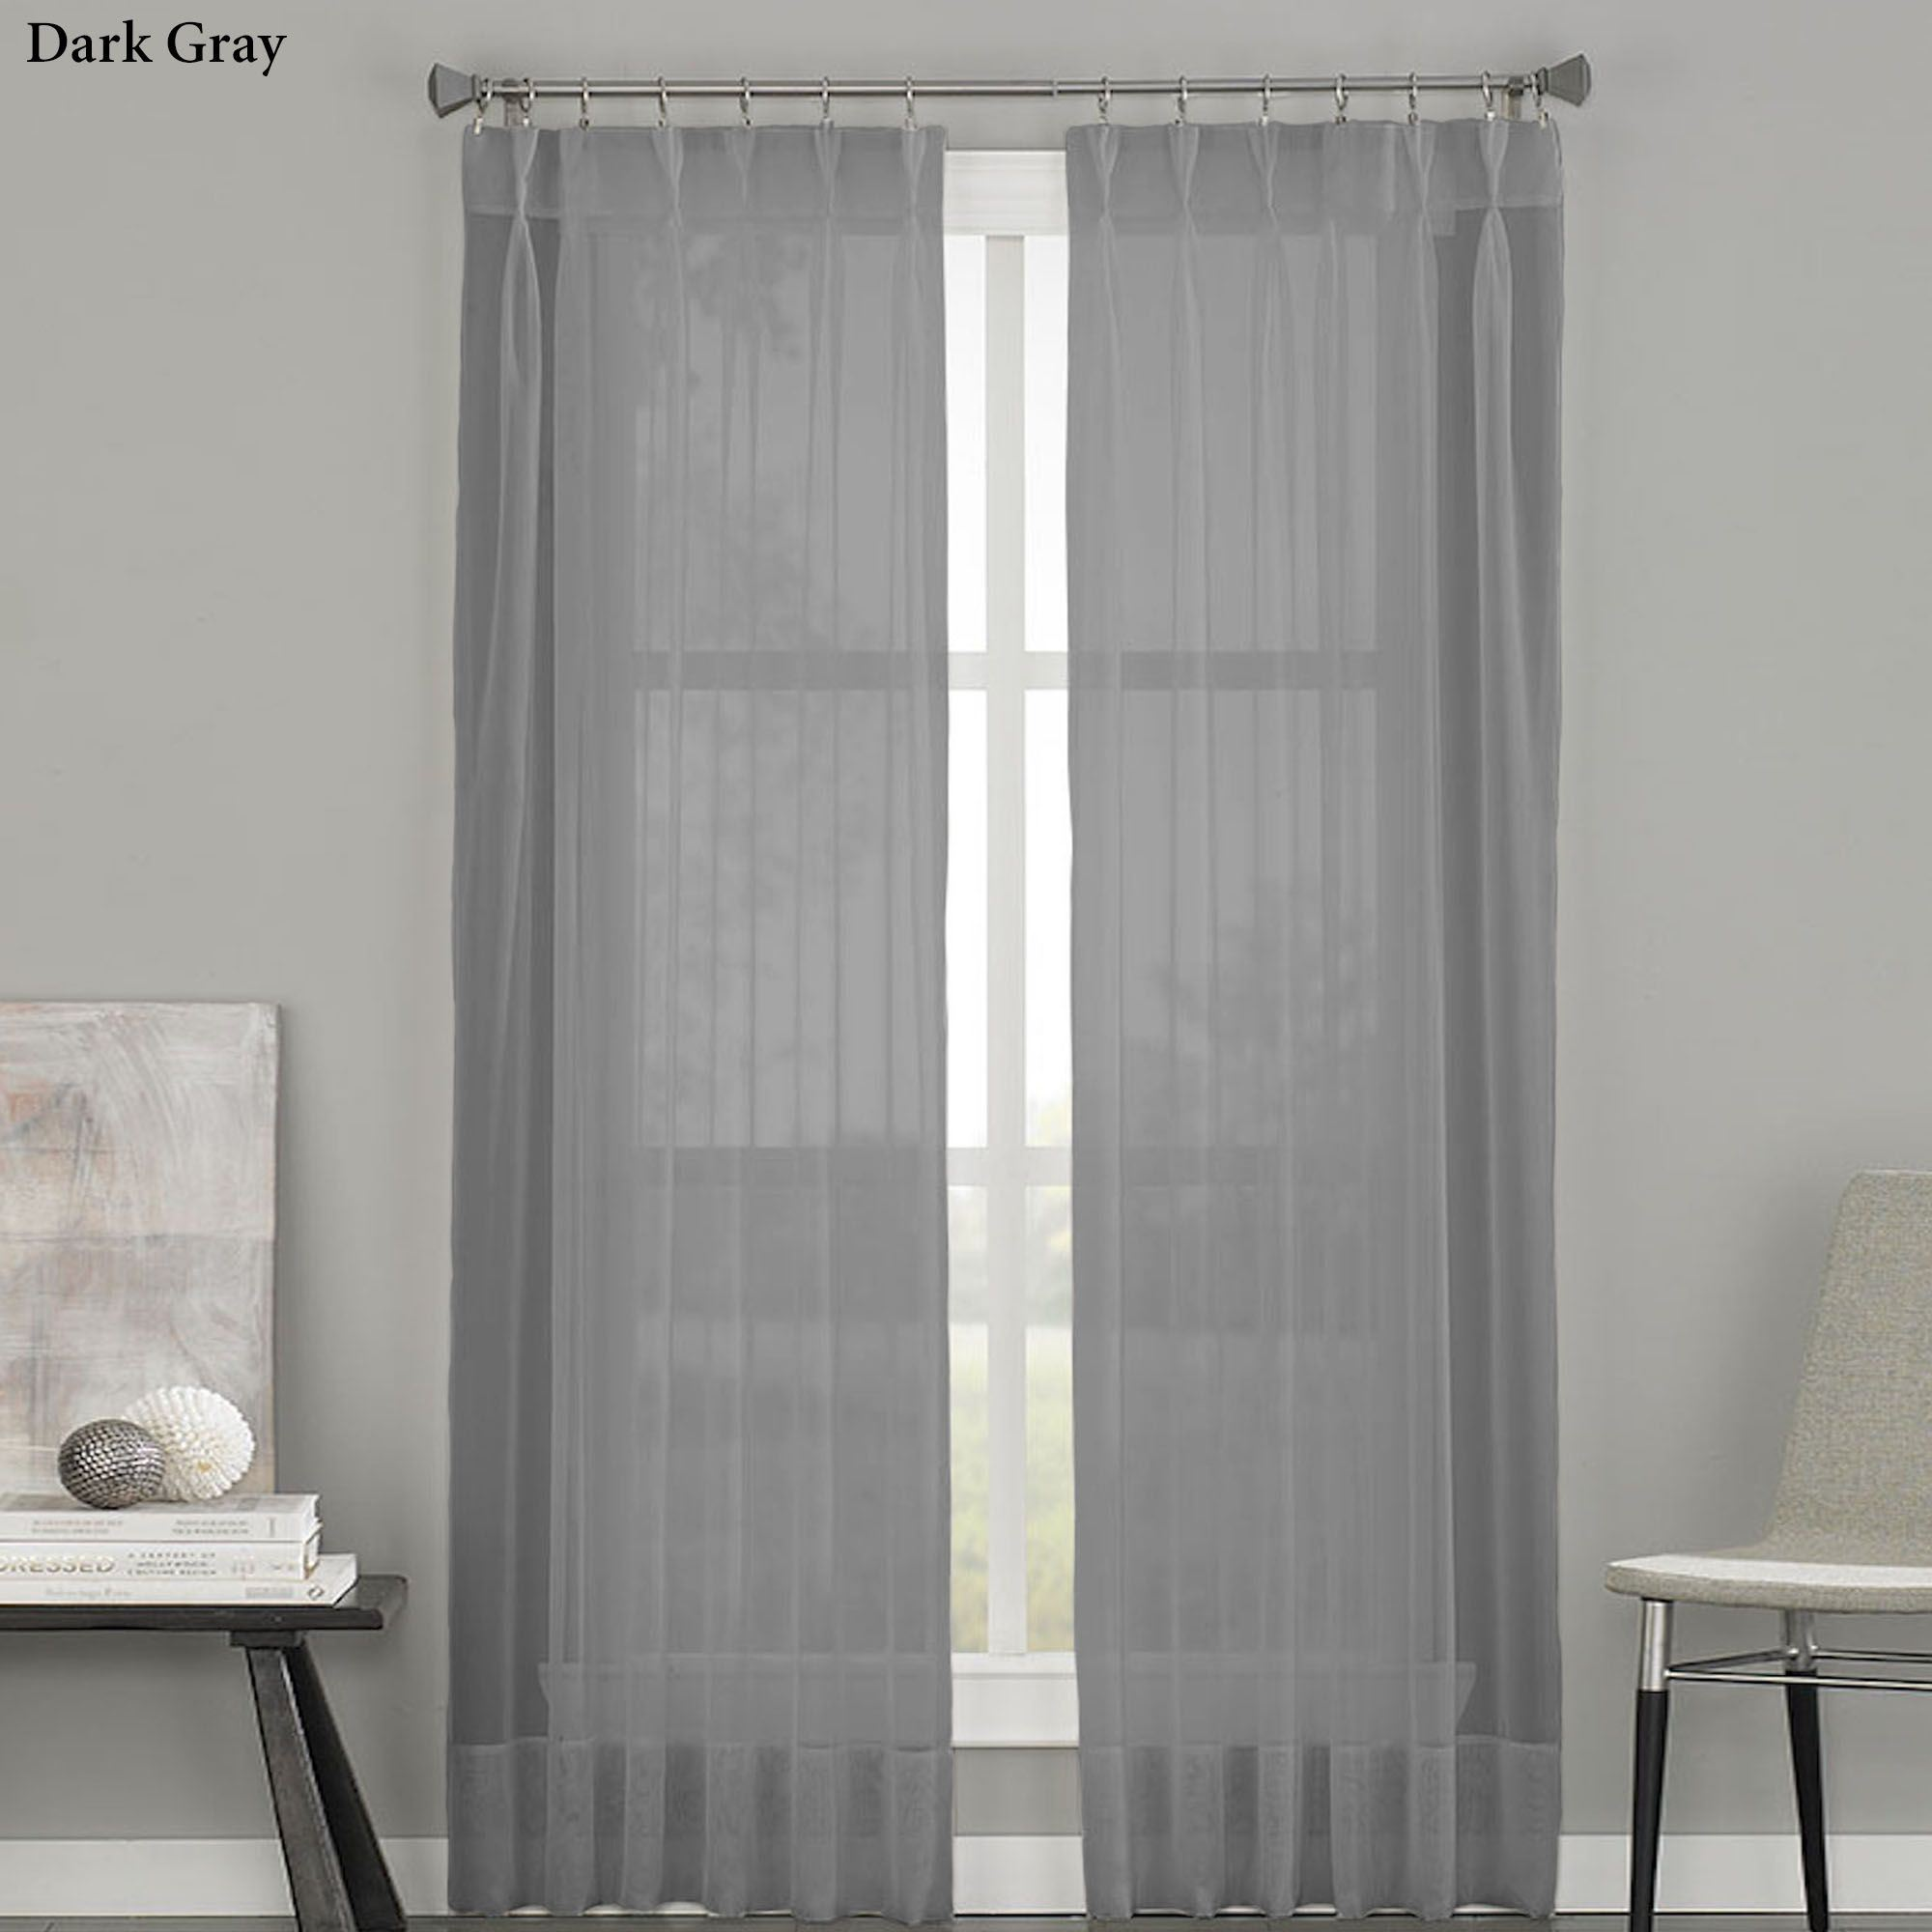 curtain miller panel sheer curtains picture inch rod pocket of window voile p crushed basil preston